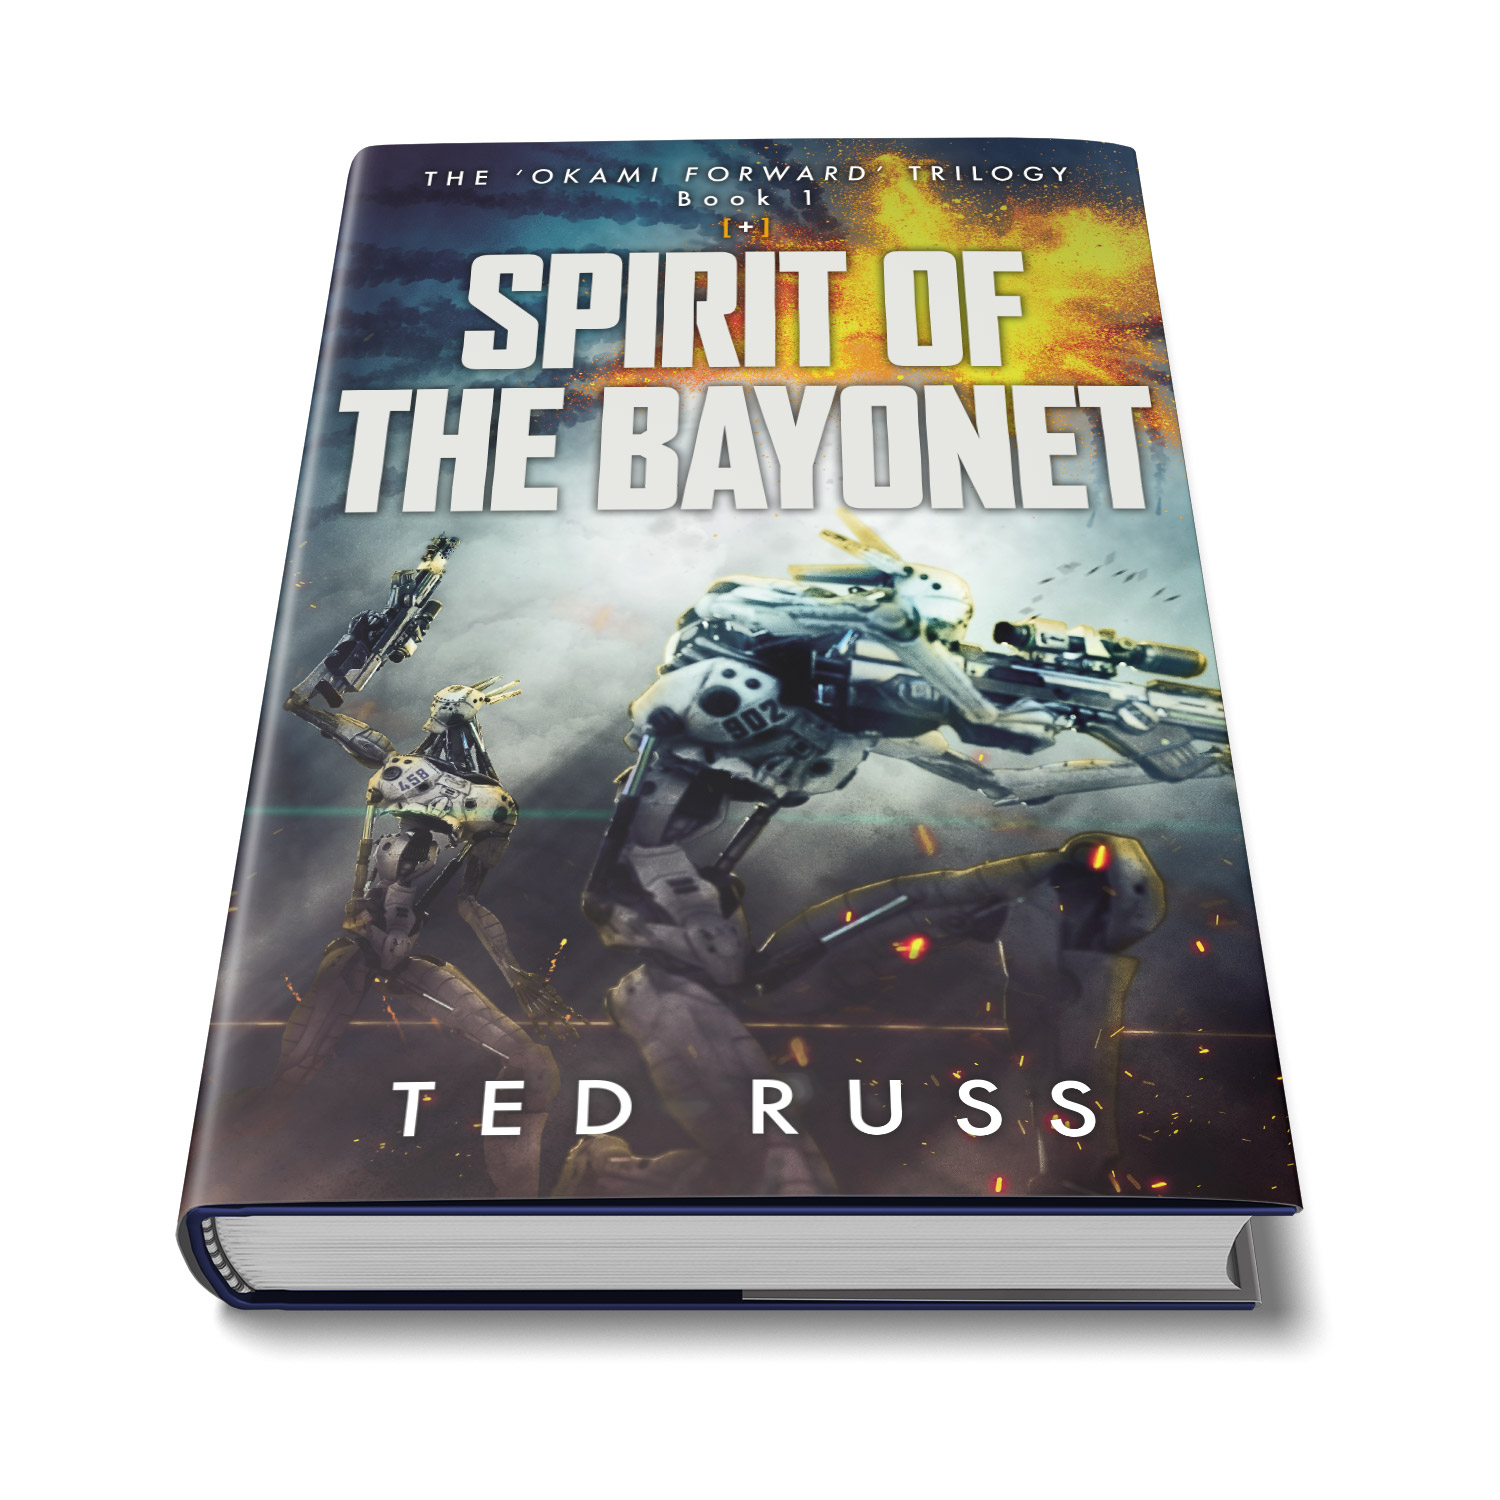 The 'Okami Forward' Trilogy is a spectacular scifi series by author Ted Russ. The cover design and interior manuscript formatting are by Mark Thomas. Learn what Mark could do for your book by visiting coverness.com.